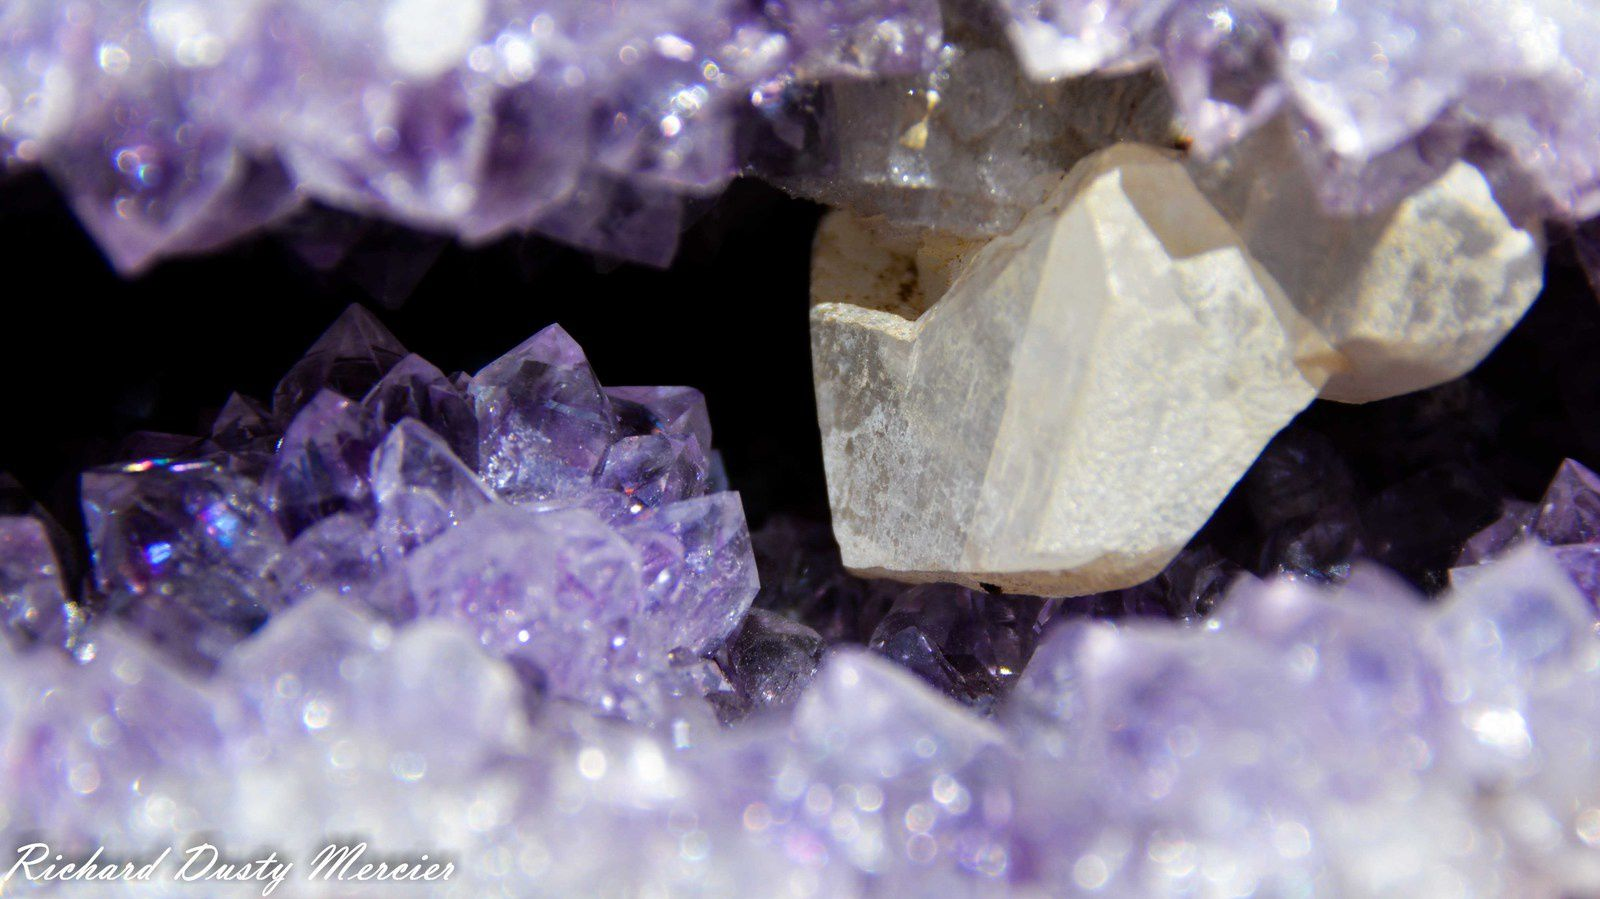 Amethyst (Améthyste) and Calcite in Geode from Artigas Mines, Uruguay (size: Cabinet)